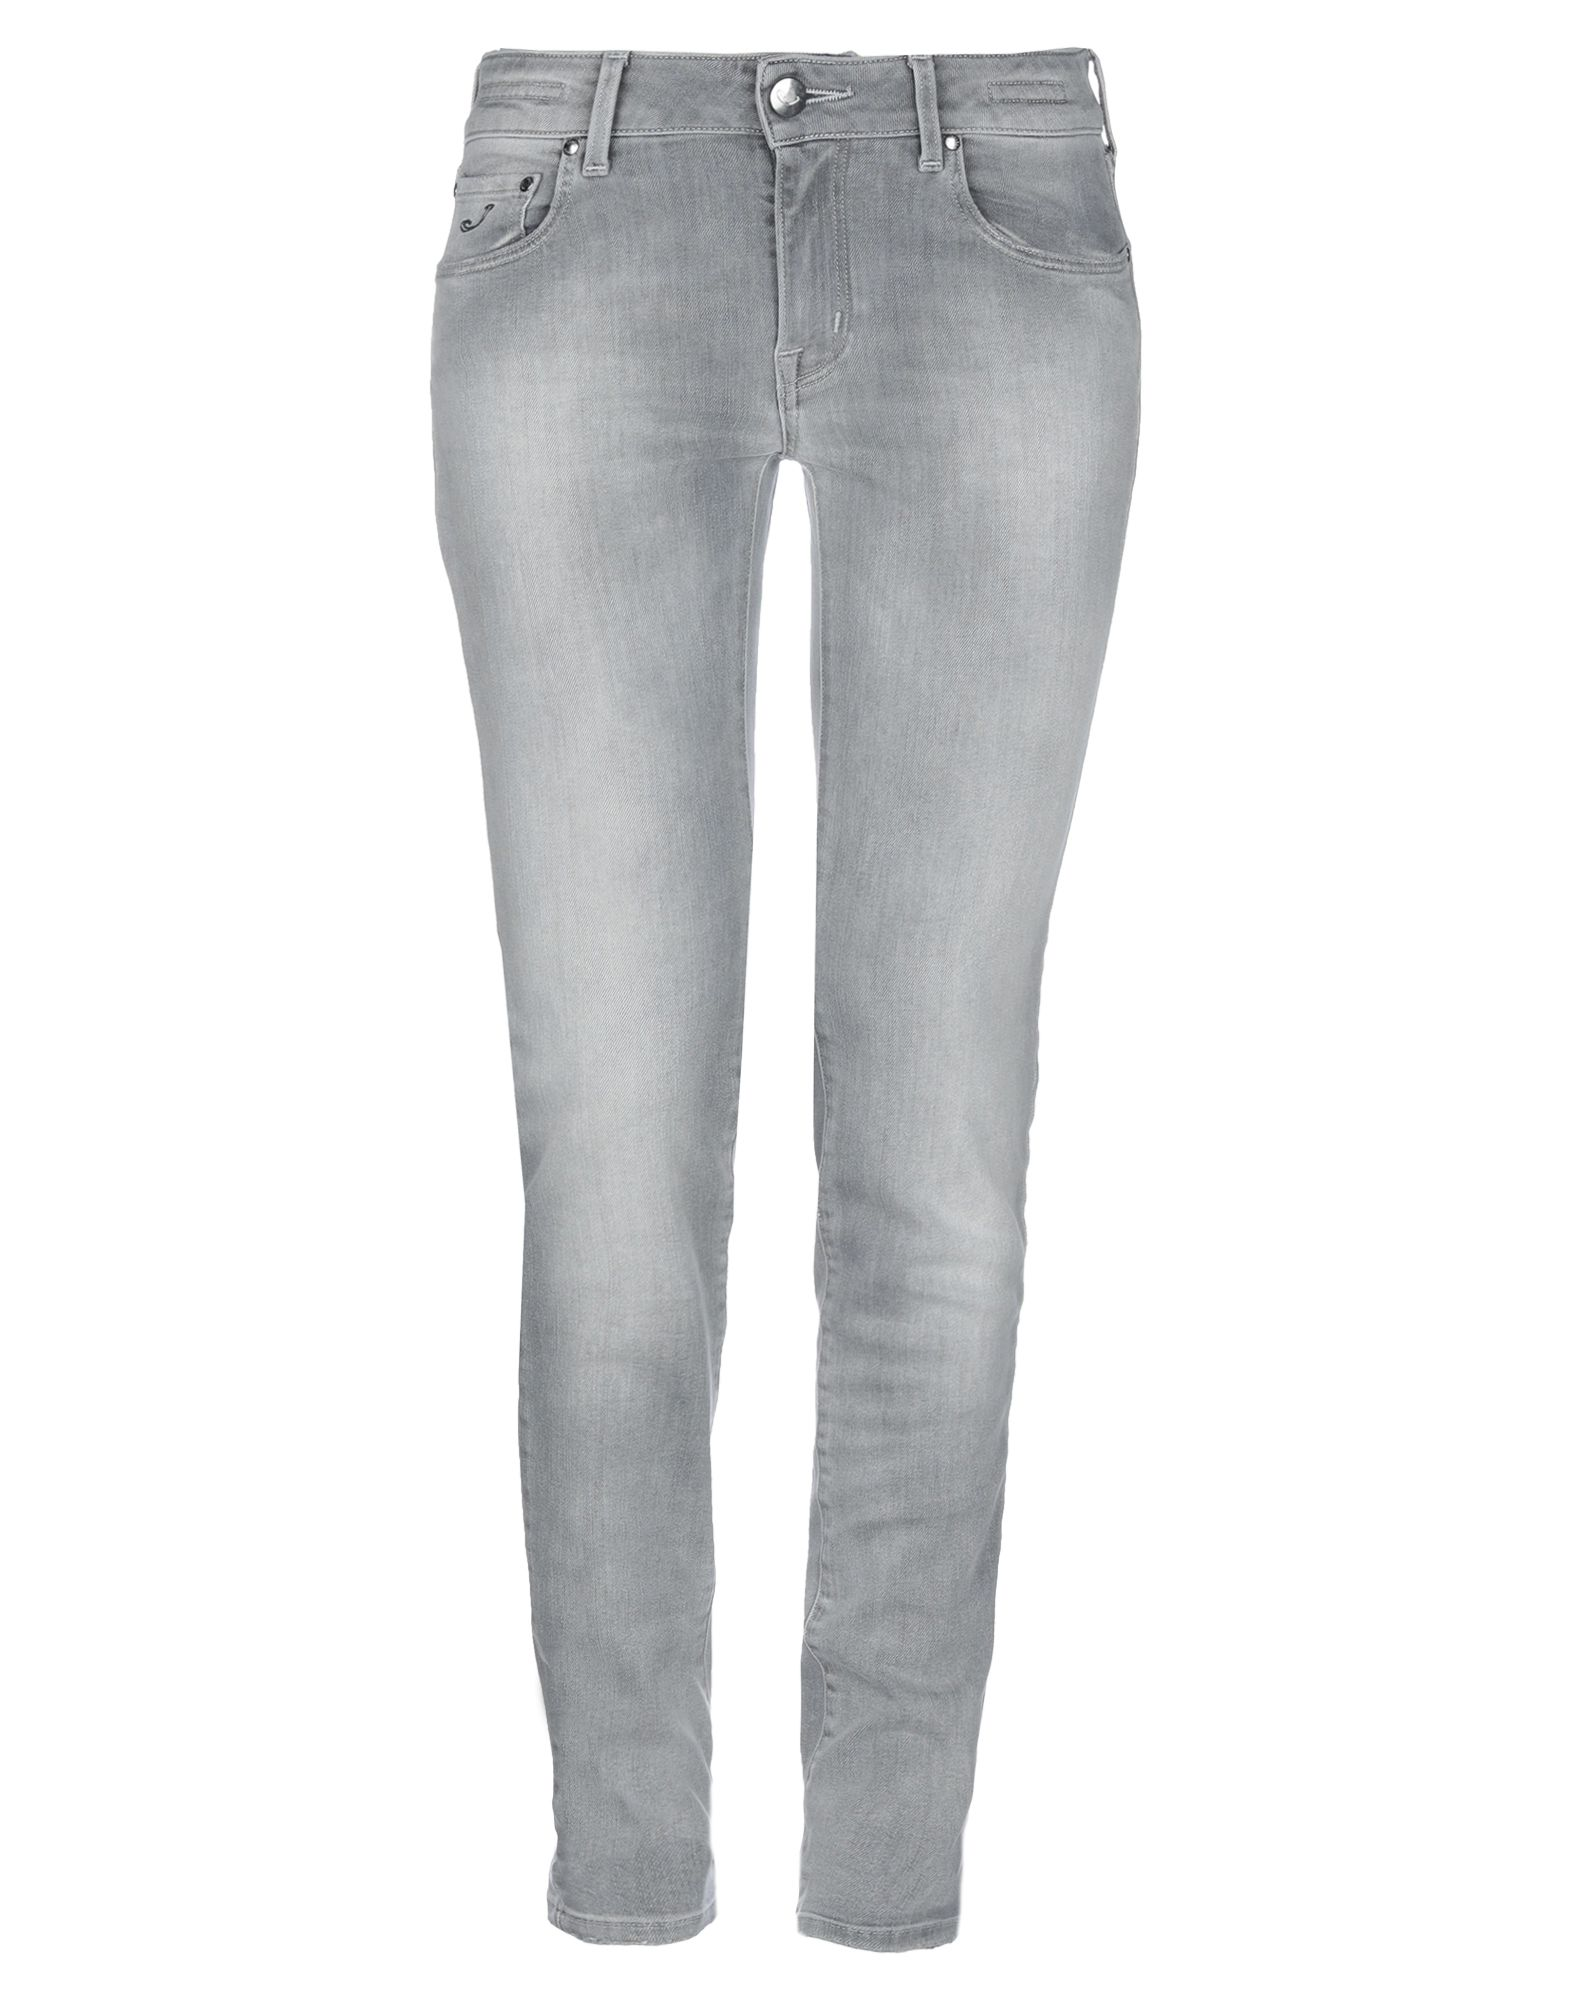 JACOB COHЁN Denim pants - Item 42814011